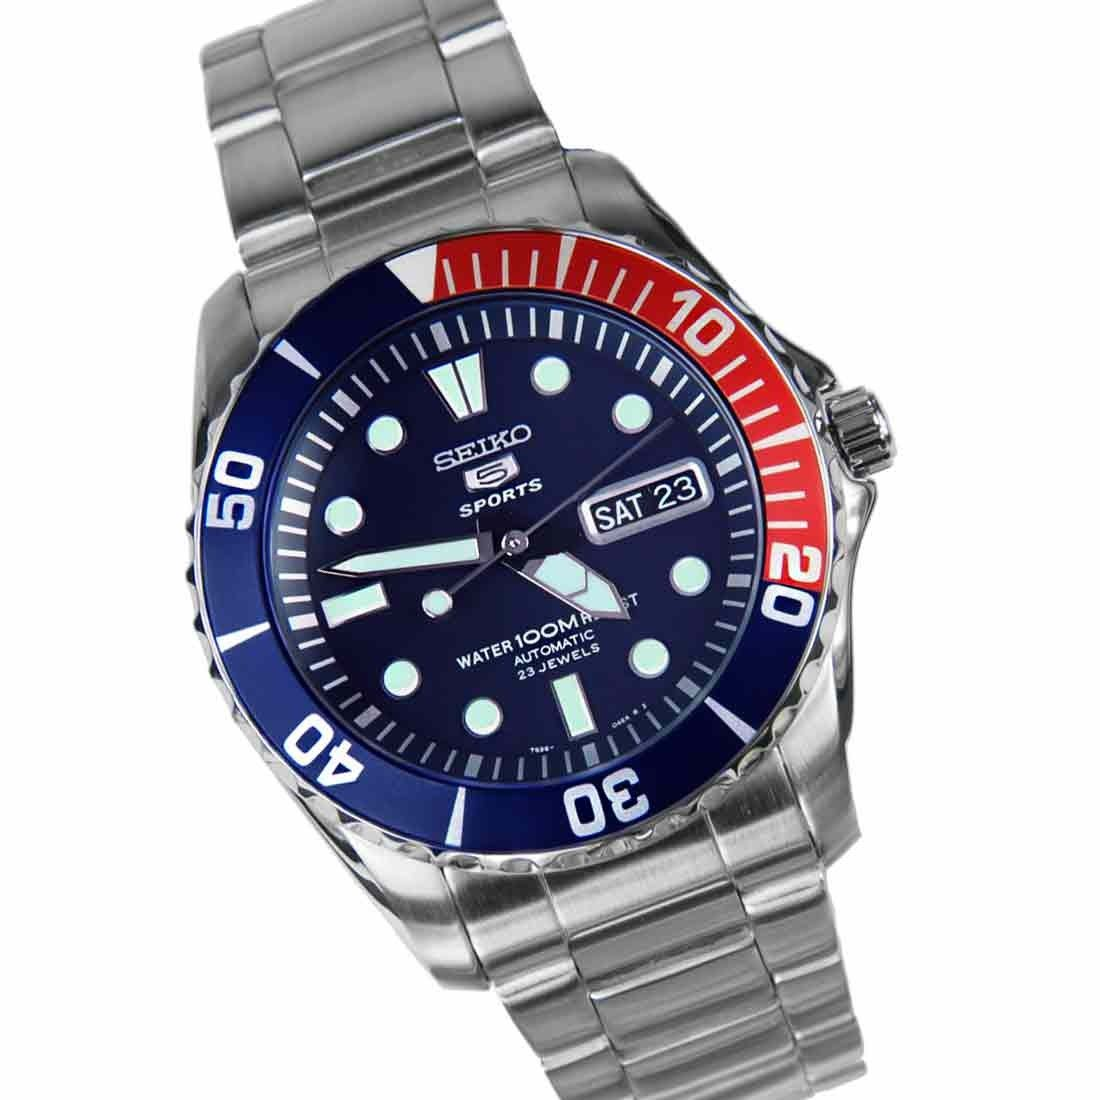 Seiko submariner snzf15k1 wrist watch for men ebay for Submarine watches